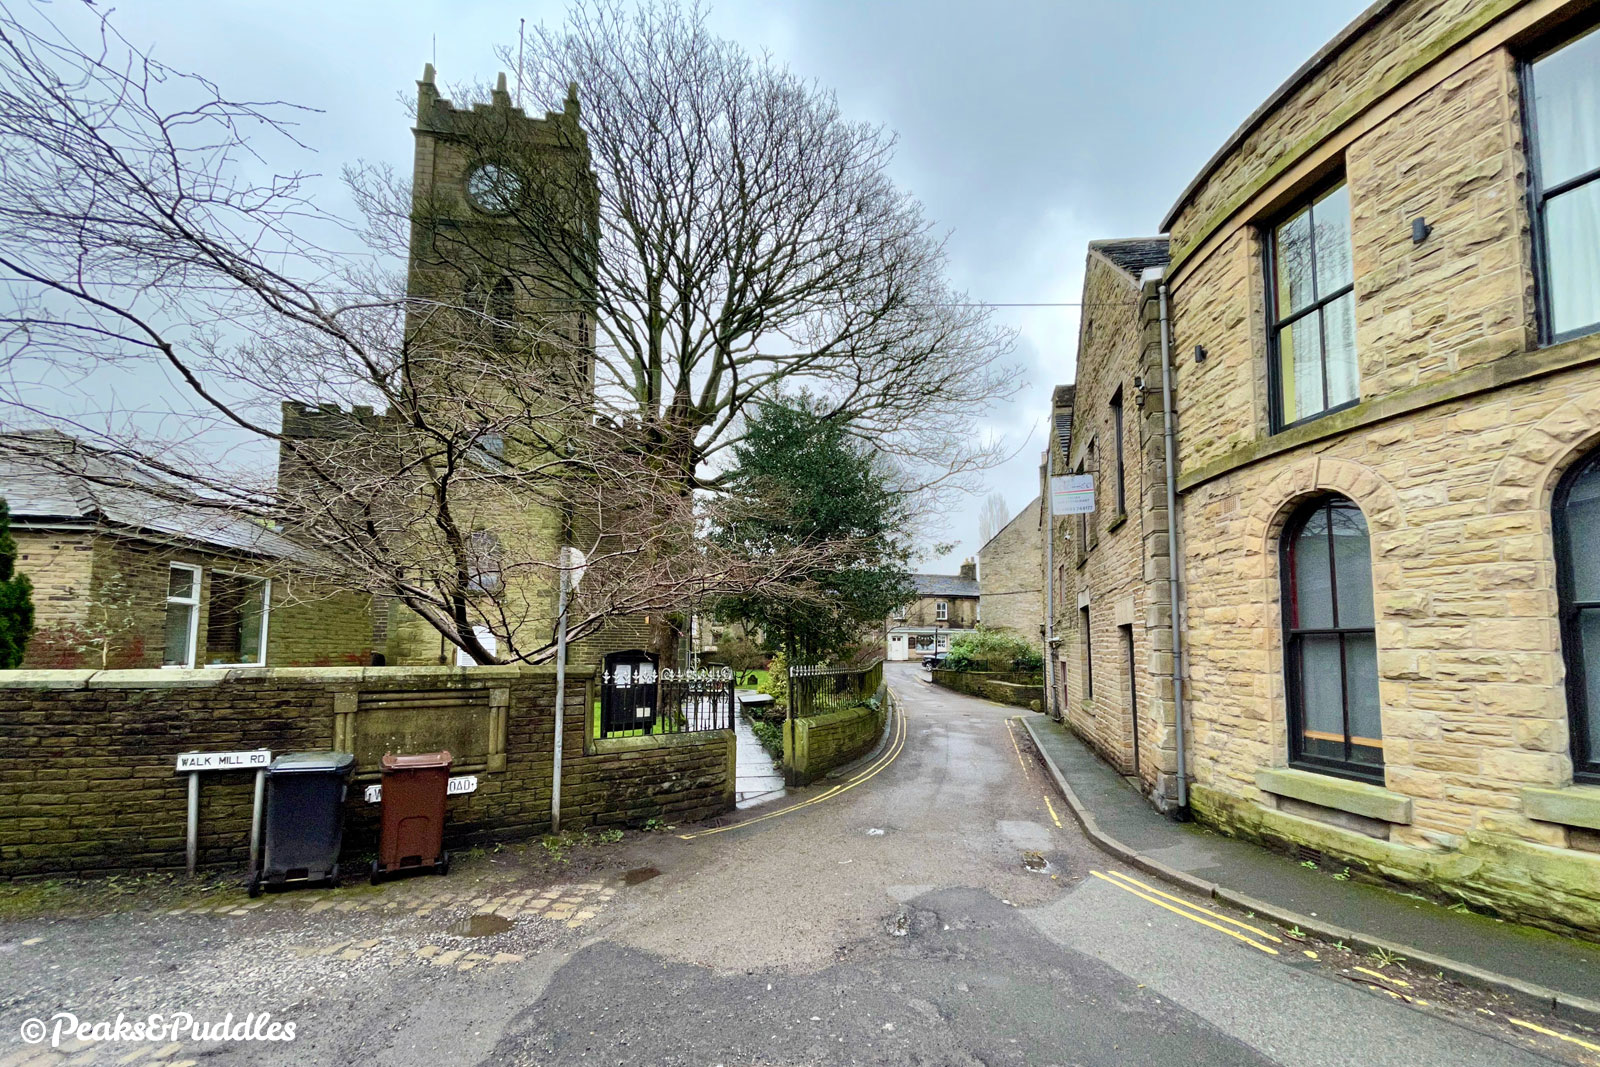 Onto Walk Mill Road from the A624 crossing, St Matthew's Church is on the left.